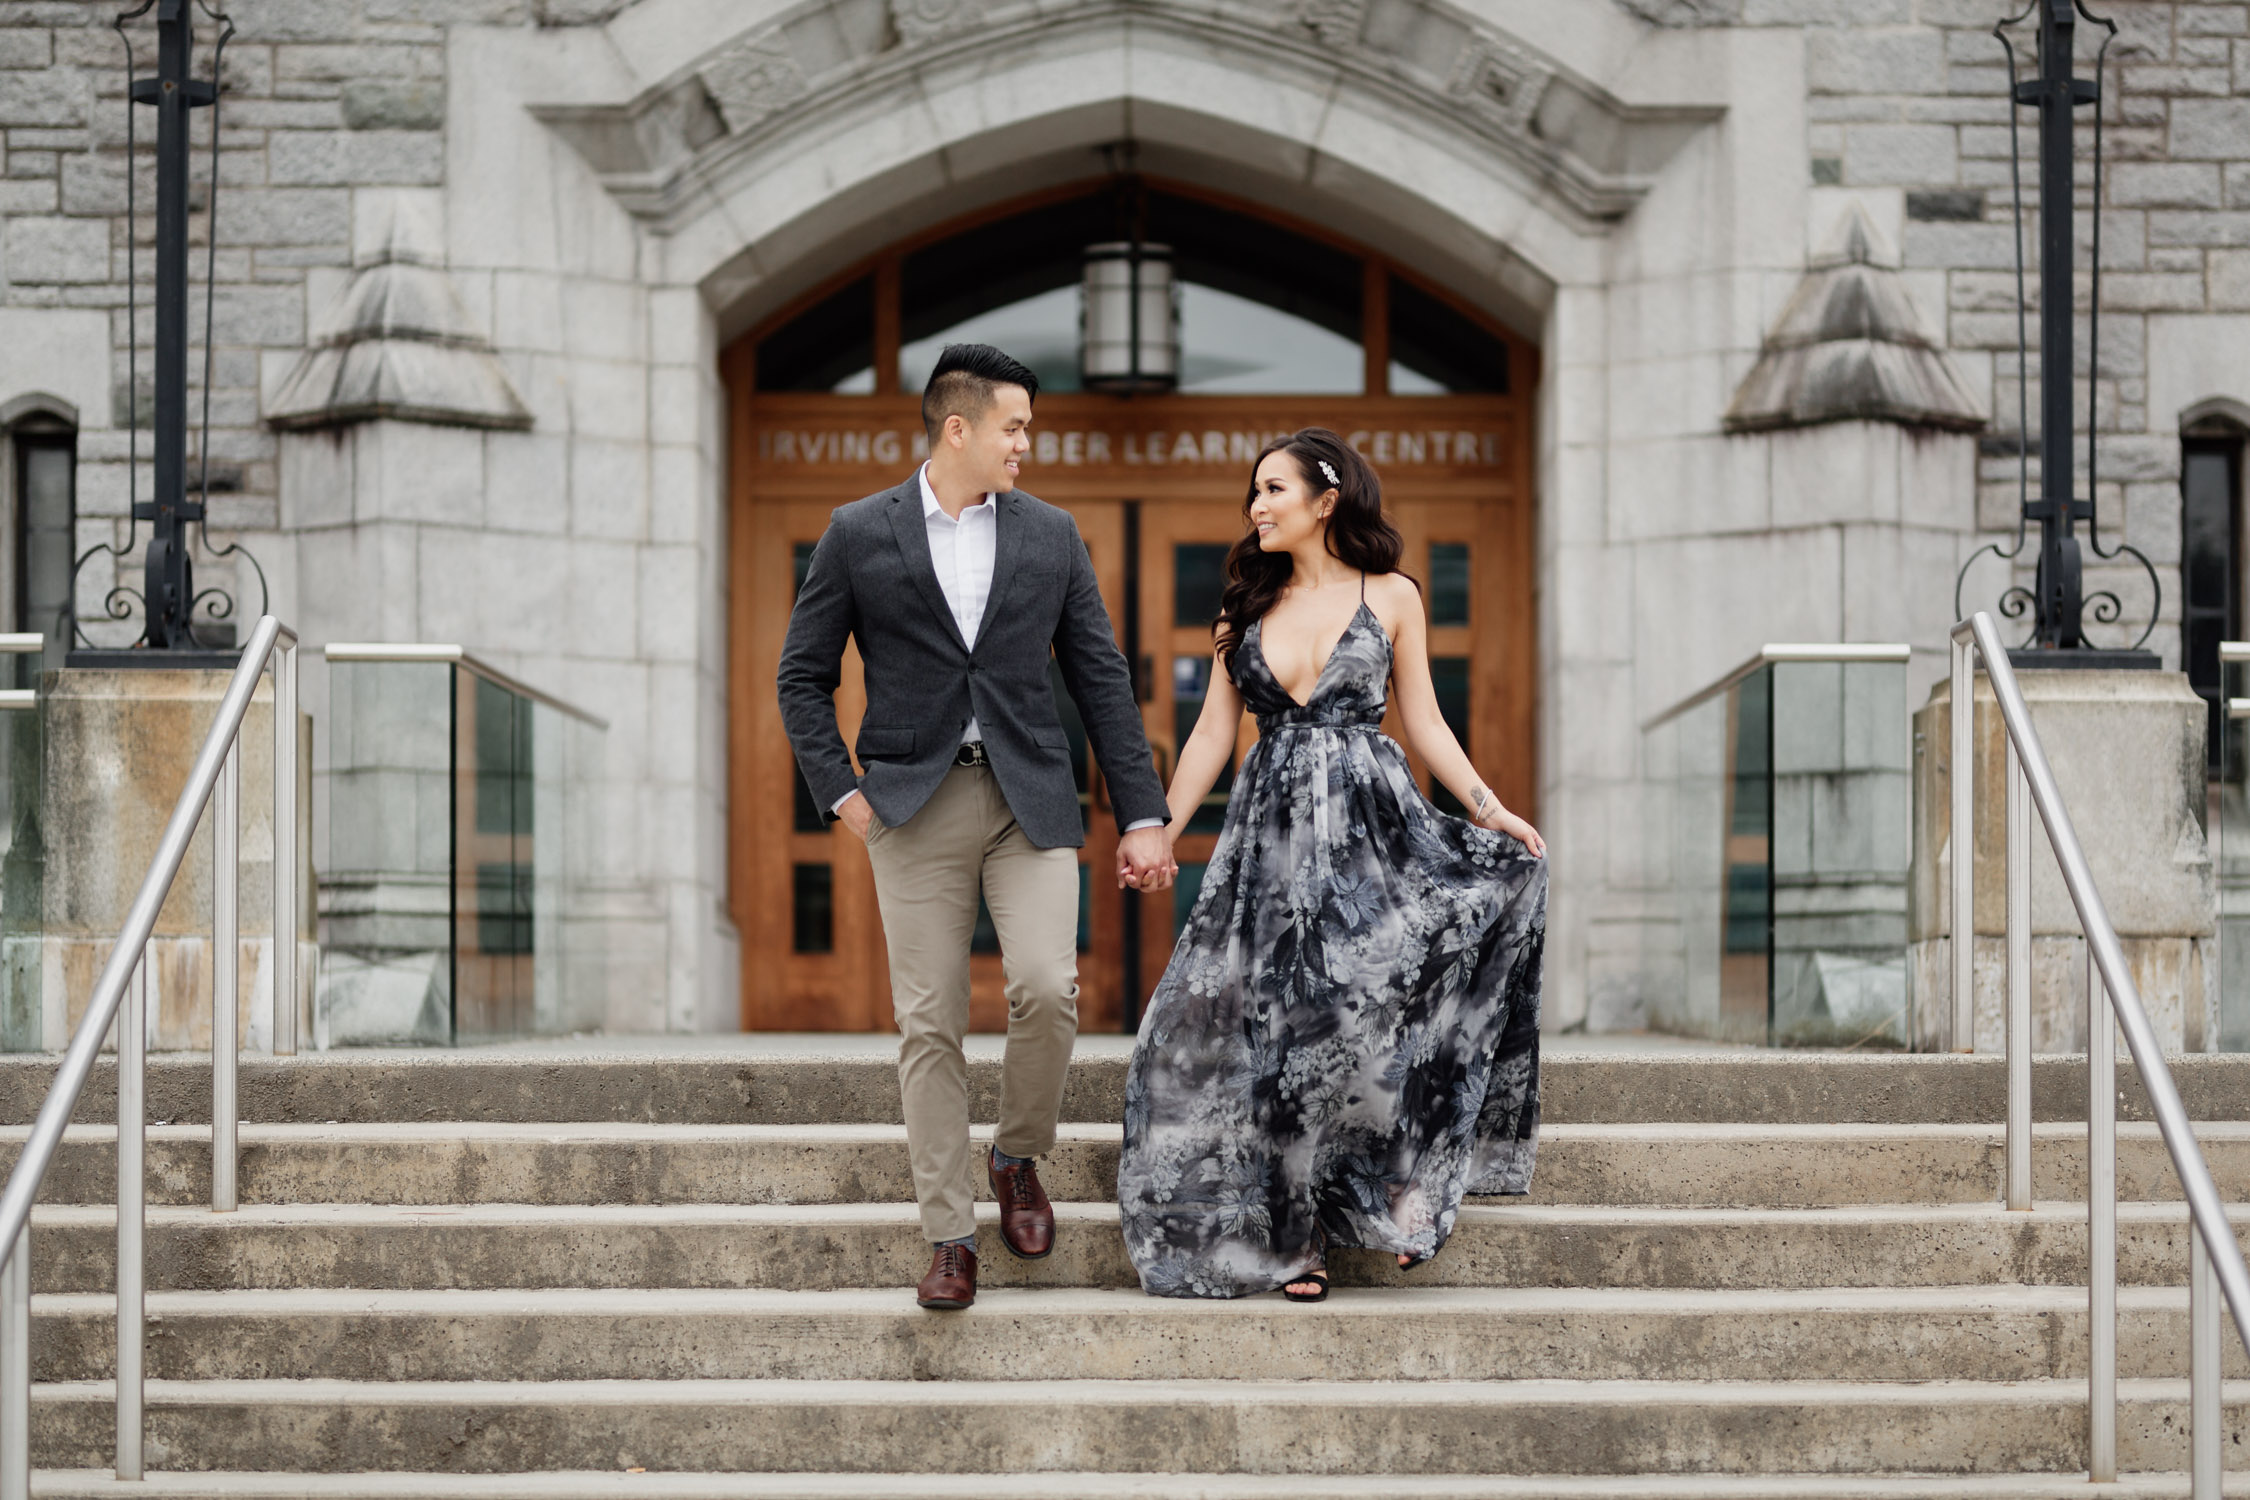 irving k. barber learning centre engagement photography at ubc vancouver